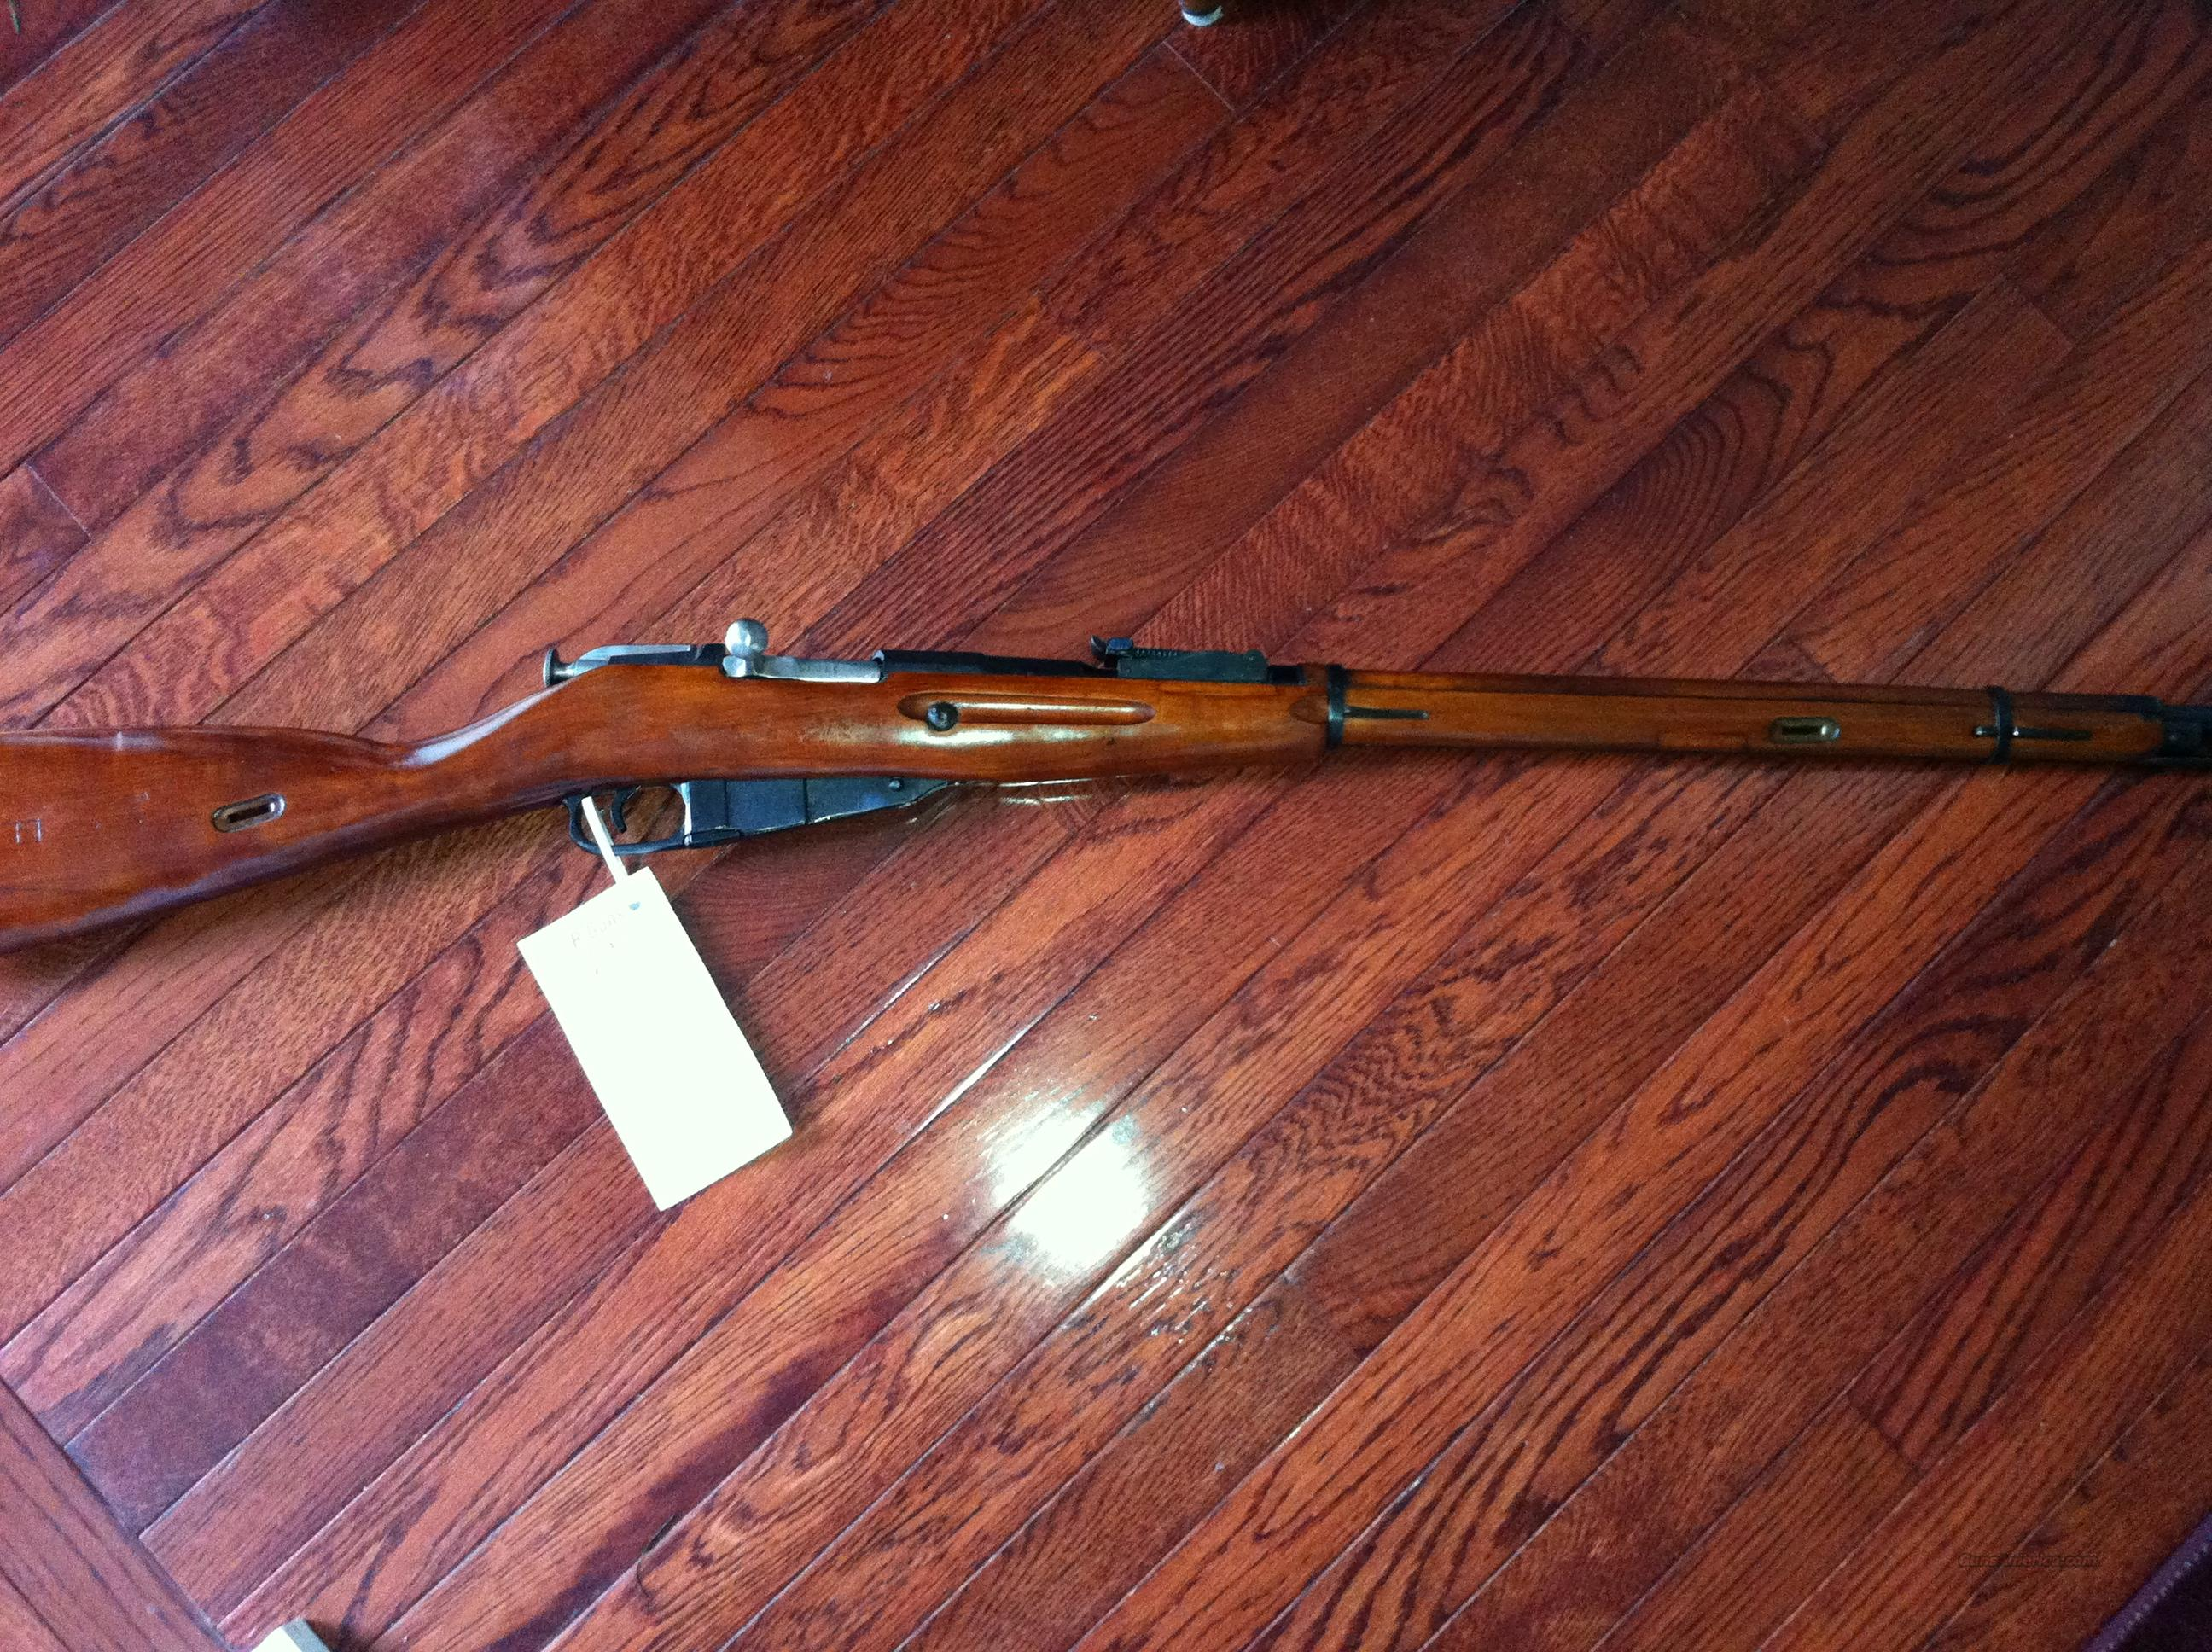 Russian 1891/30 7.62x54R Hex Mosin Nagant Rifle  Guns > Rifles > Mosin-Nagant Rifles/Carbines